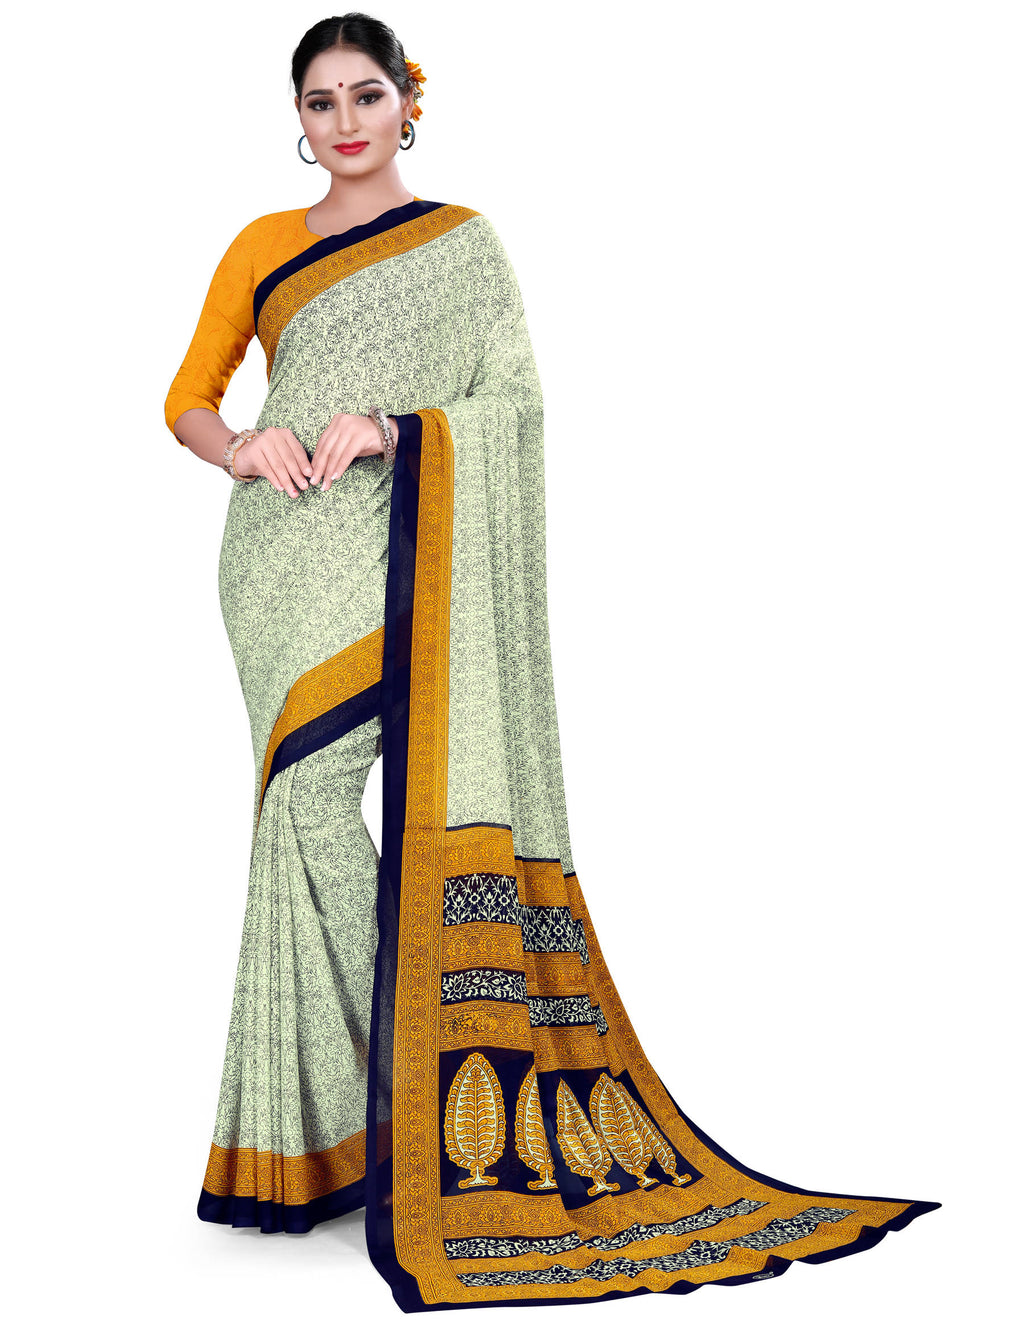 White, Blue & Yellow Color Crepe Chiffon Daily Wear Printed Sarees NYF-7787